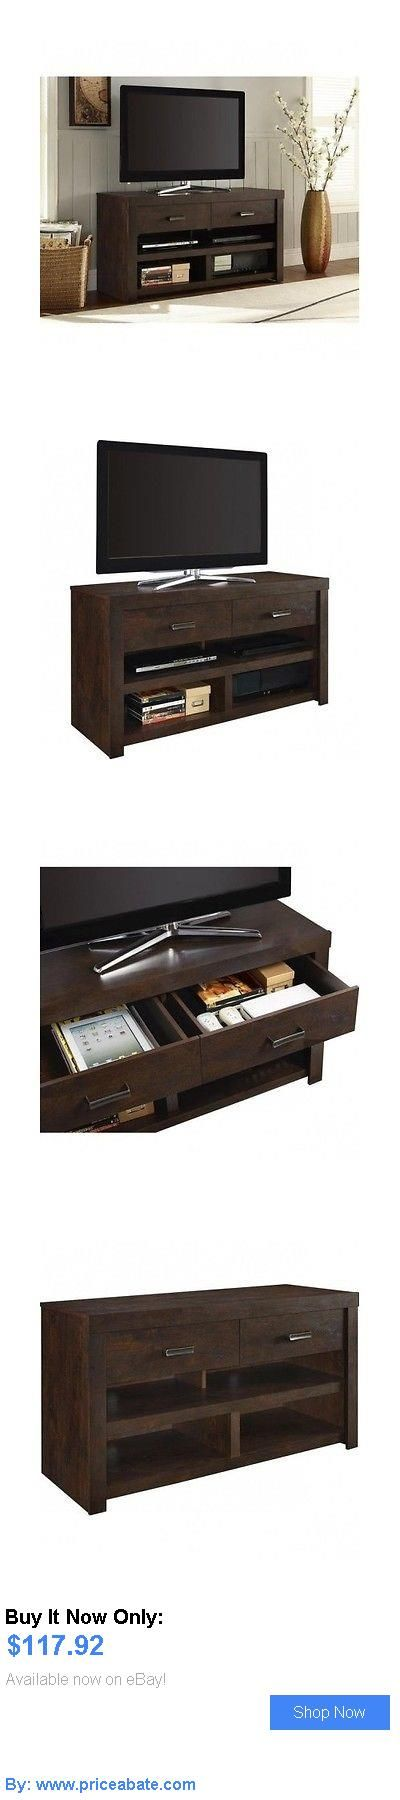 Entertainment Units, TV Stands: Tv Home Entertainment Center Modern Storage Stand Furniture Wood Cabinet Console BUY IT NOW ONLY: $117.92 #priceabateEntertainmentUnitsTVStands OR #priceabate